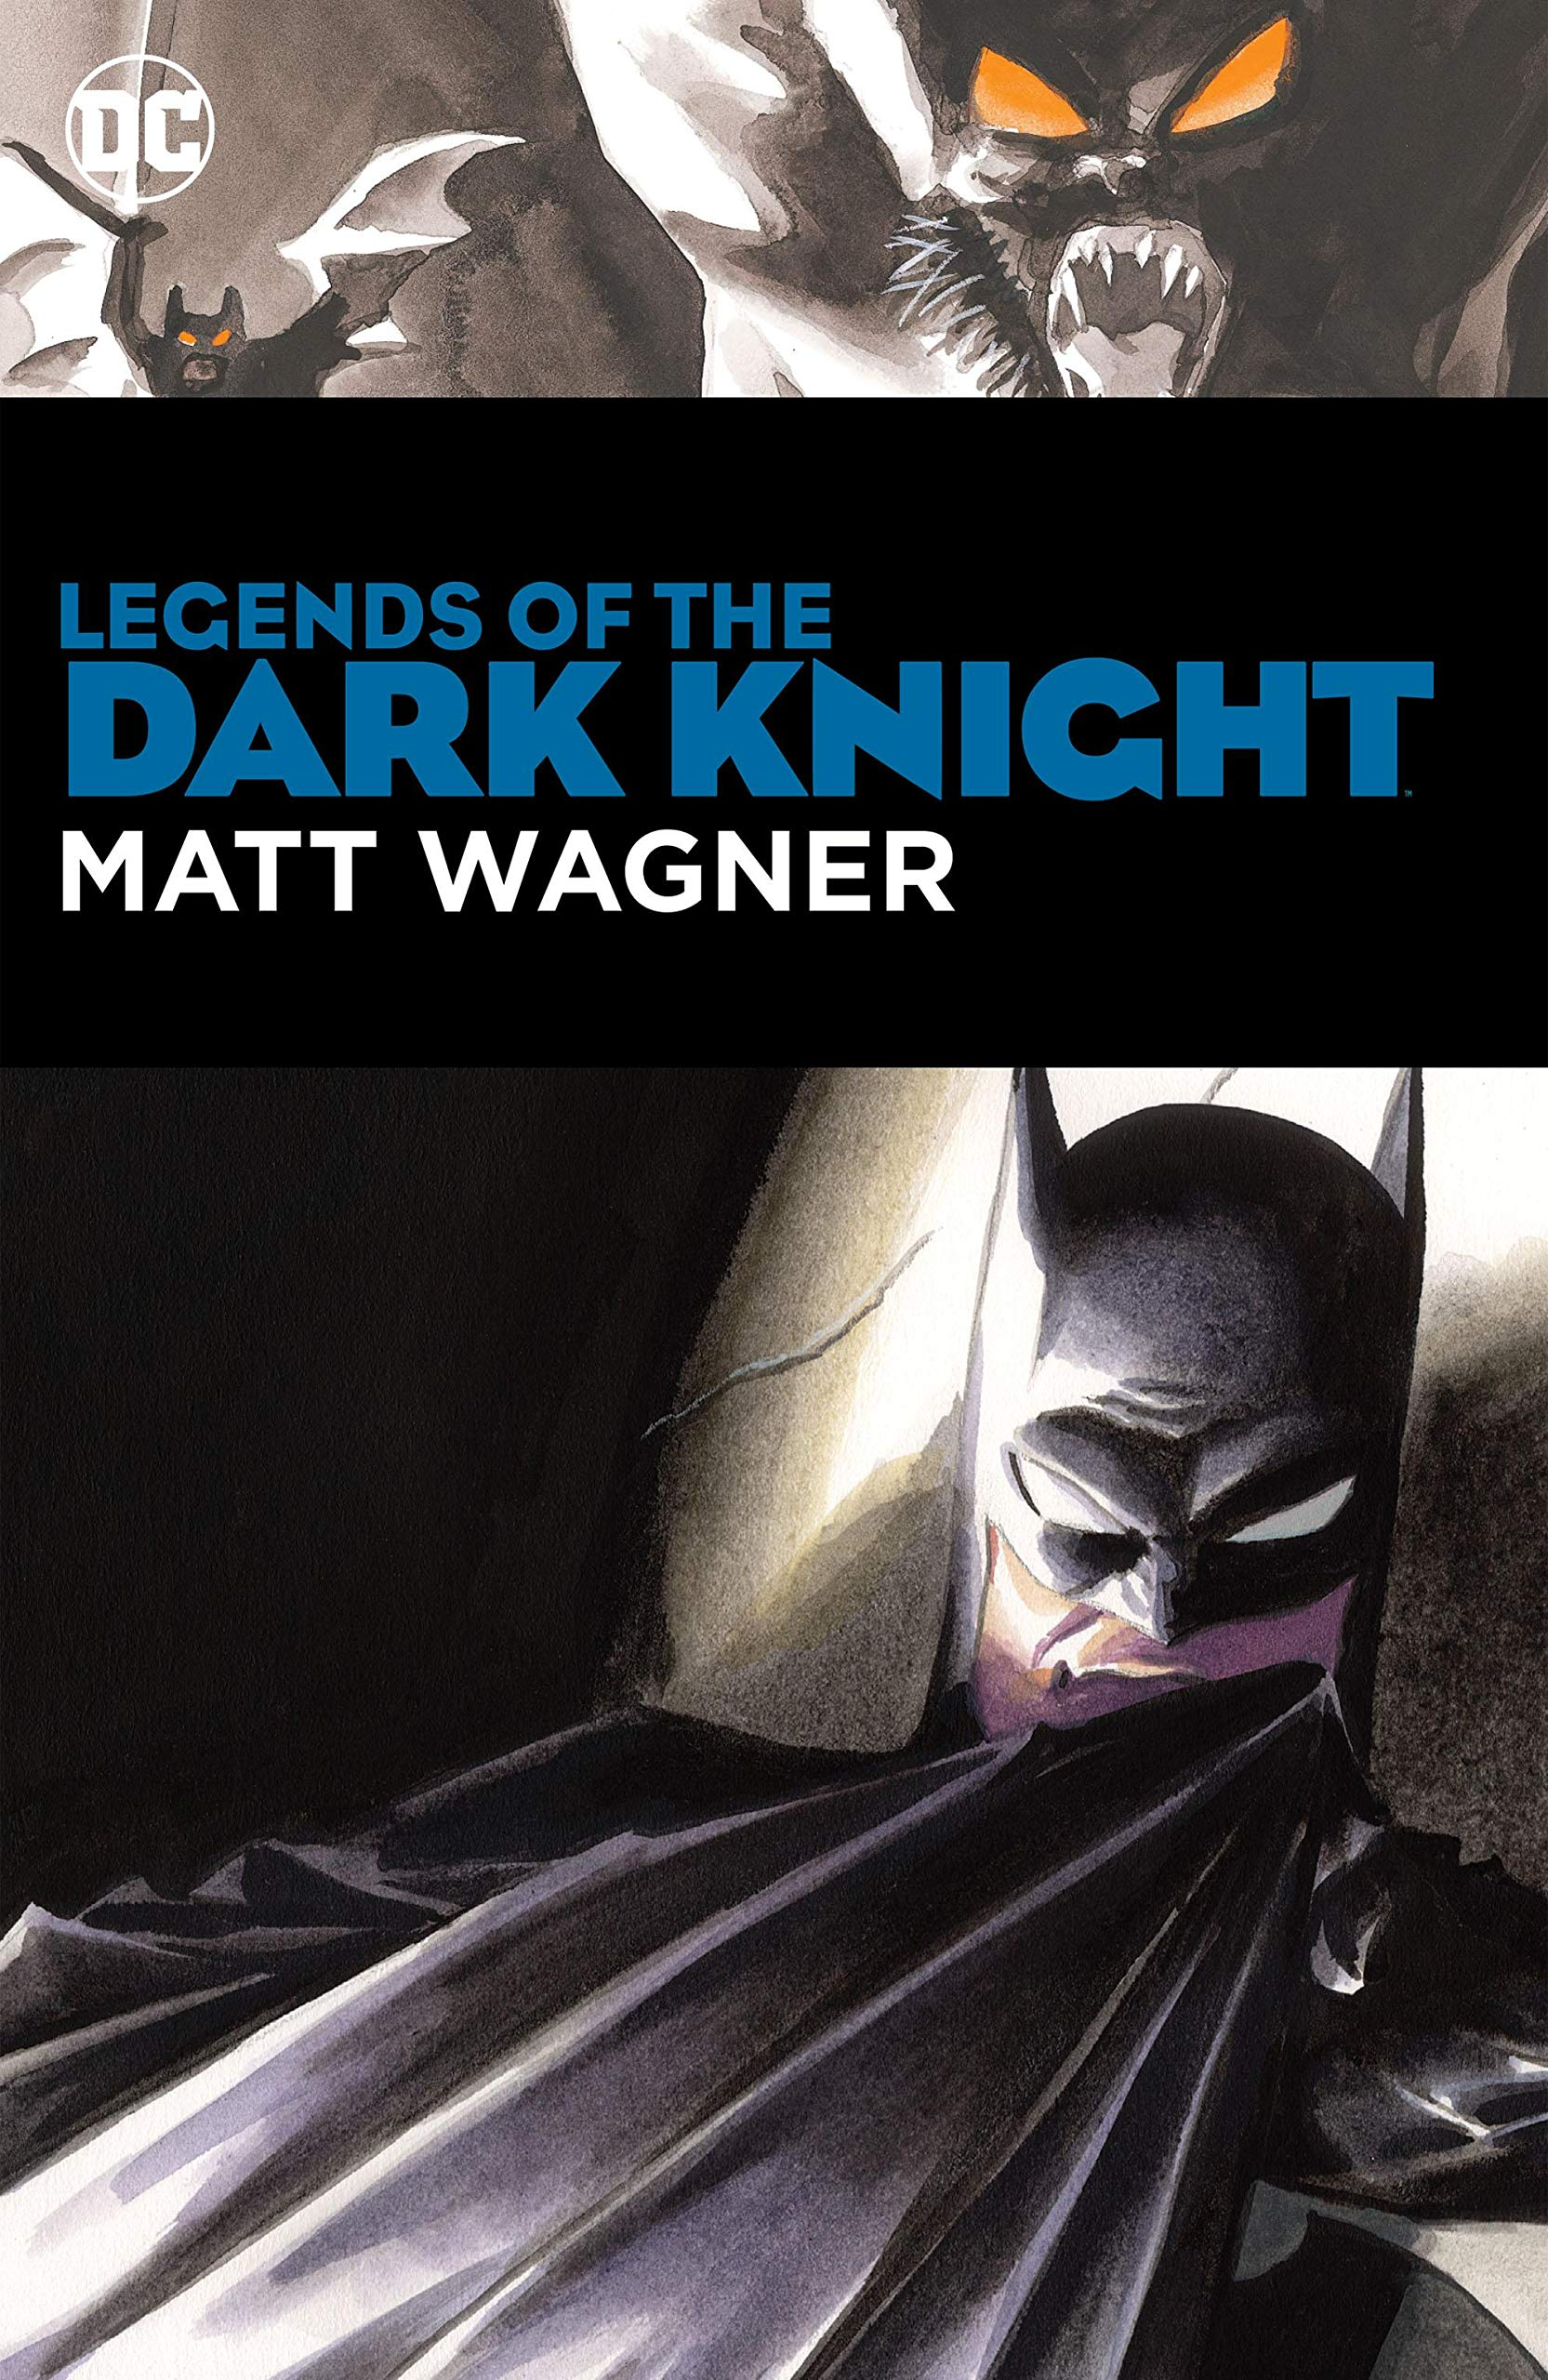 Legends of the Dark Knight: Matt Wagner